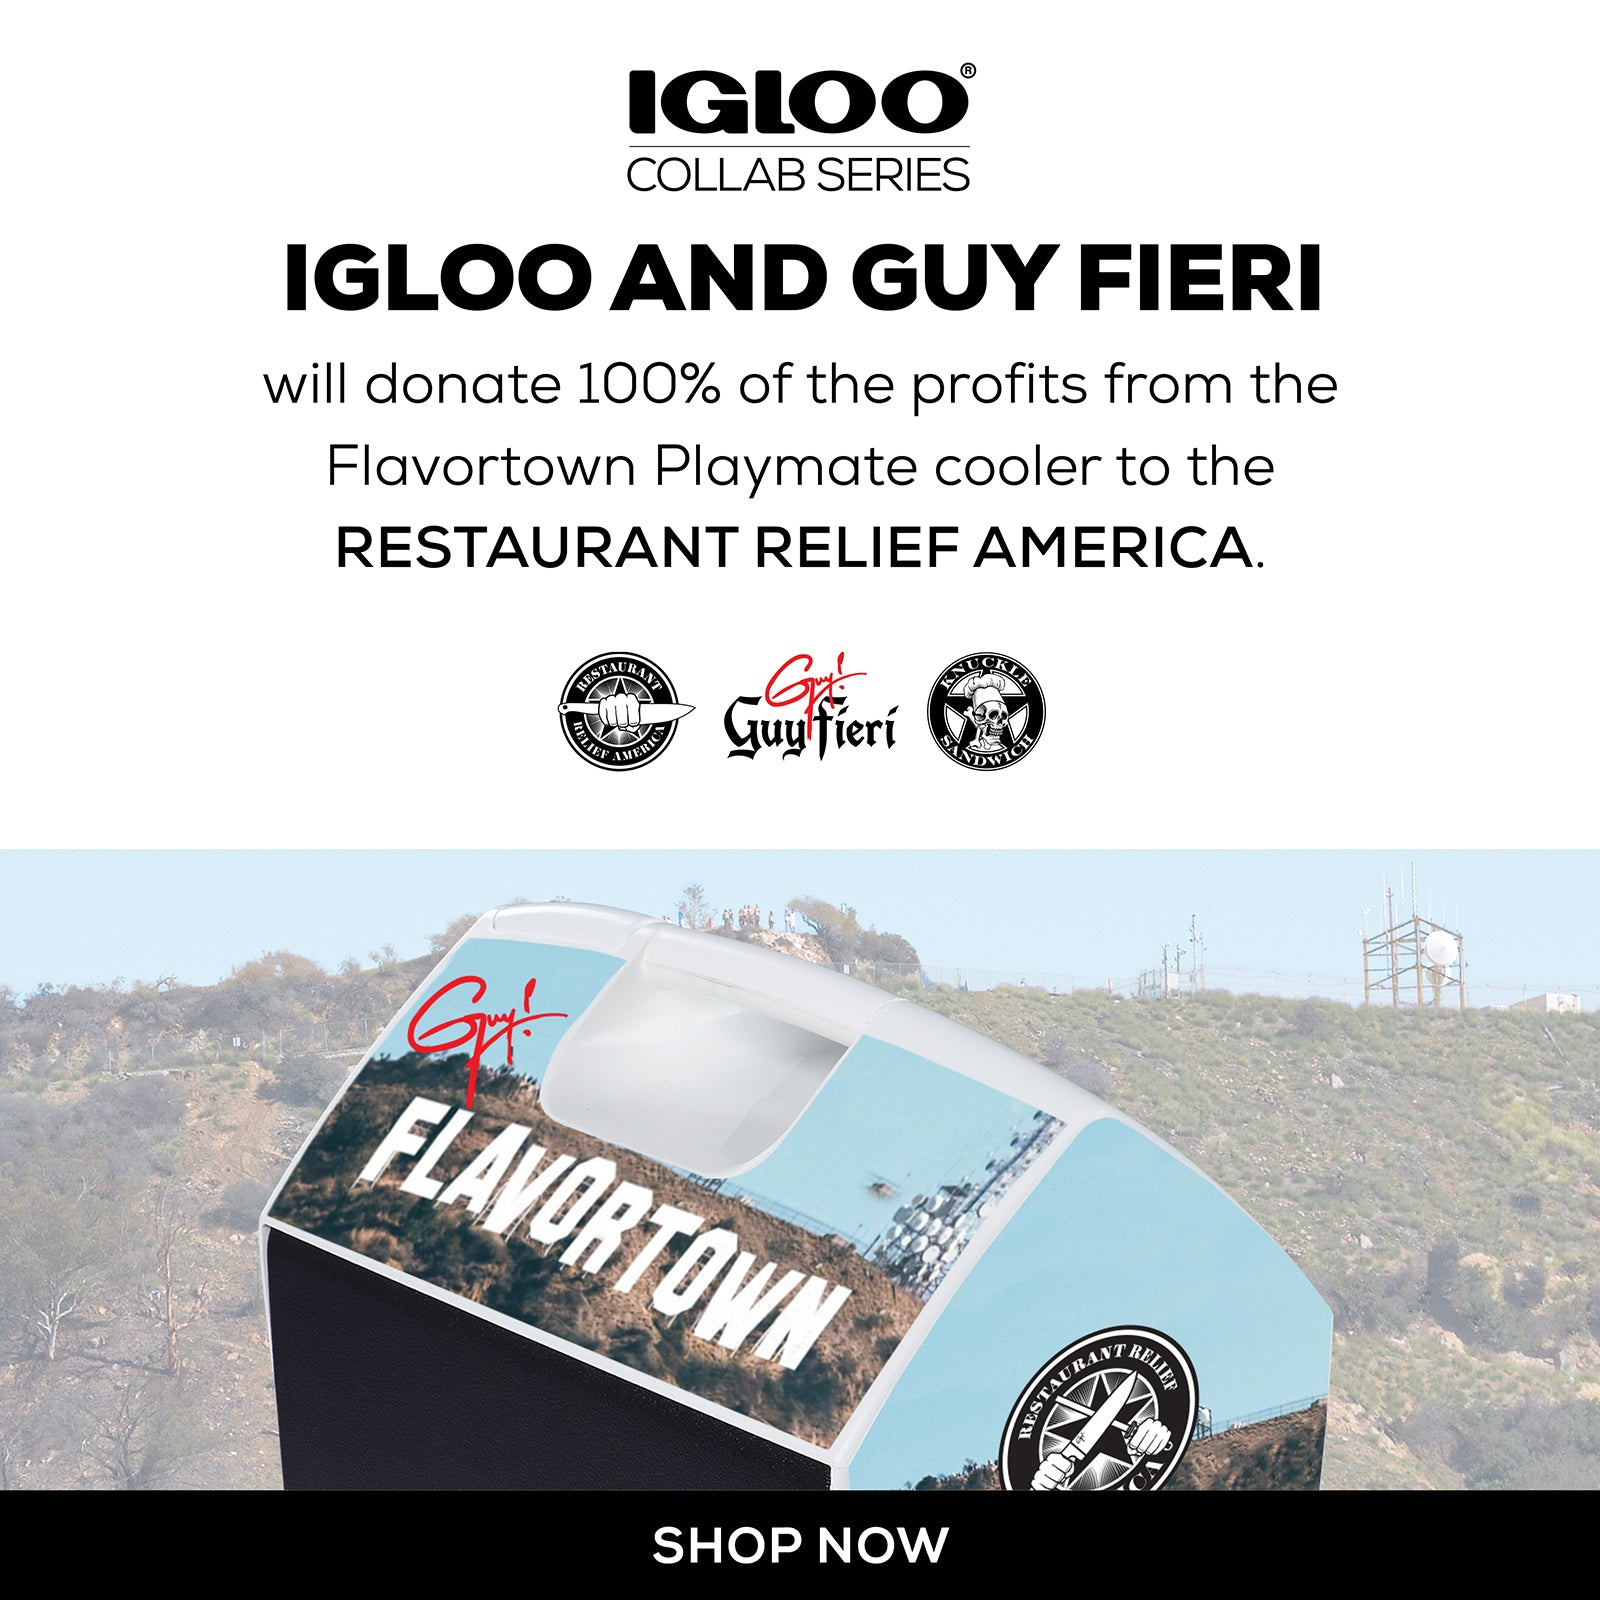 Igloo & Guy Fieri